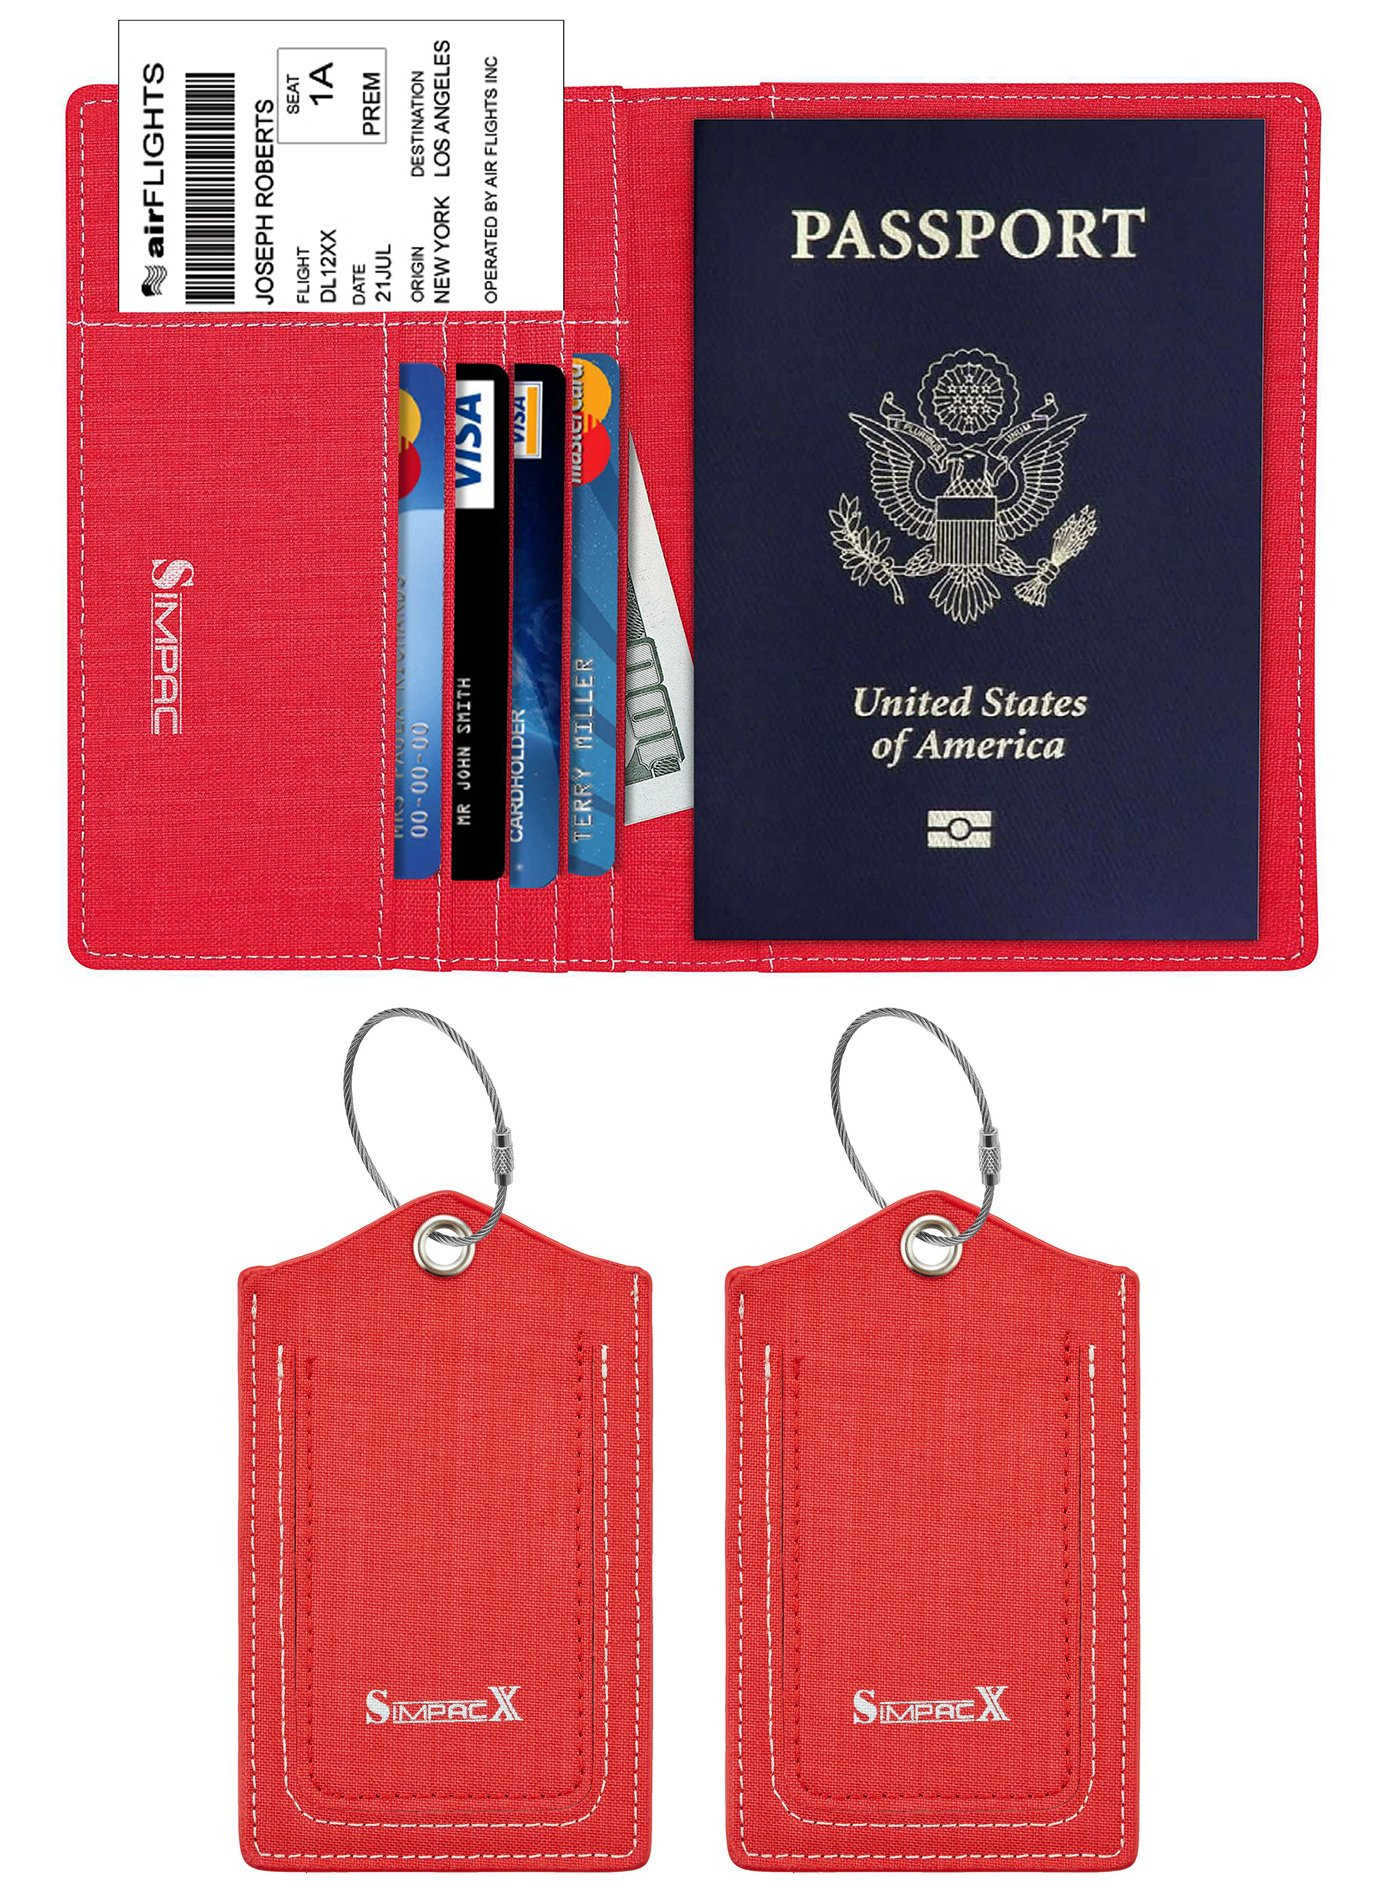 SimpacX Fabric Passport Holder Wallet Cover Case RFID Blocking Travel Wallet (holder plus tag red) by SimpacX (Image #1)